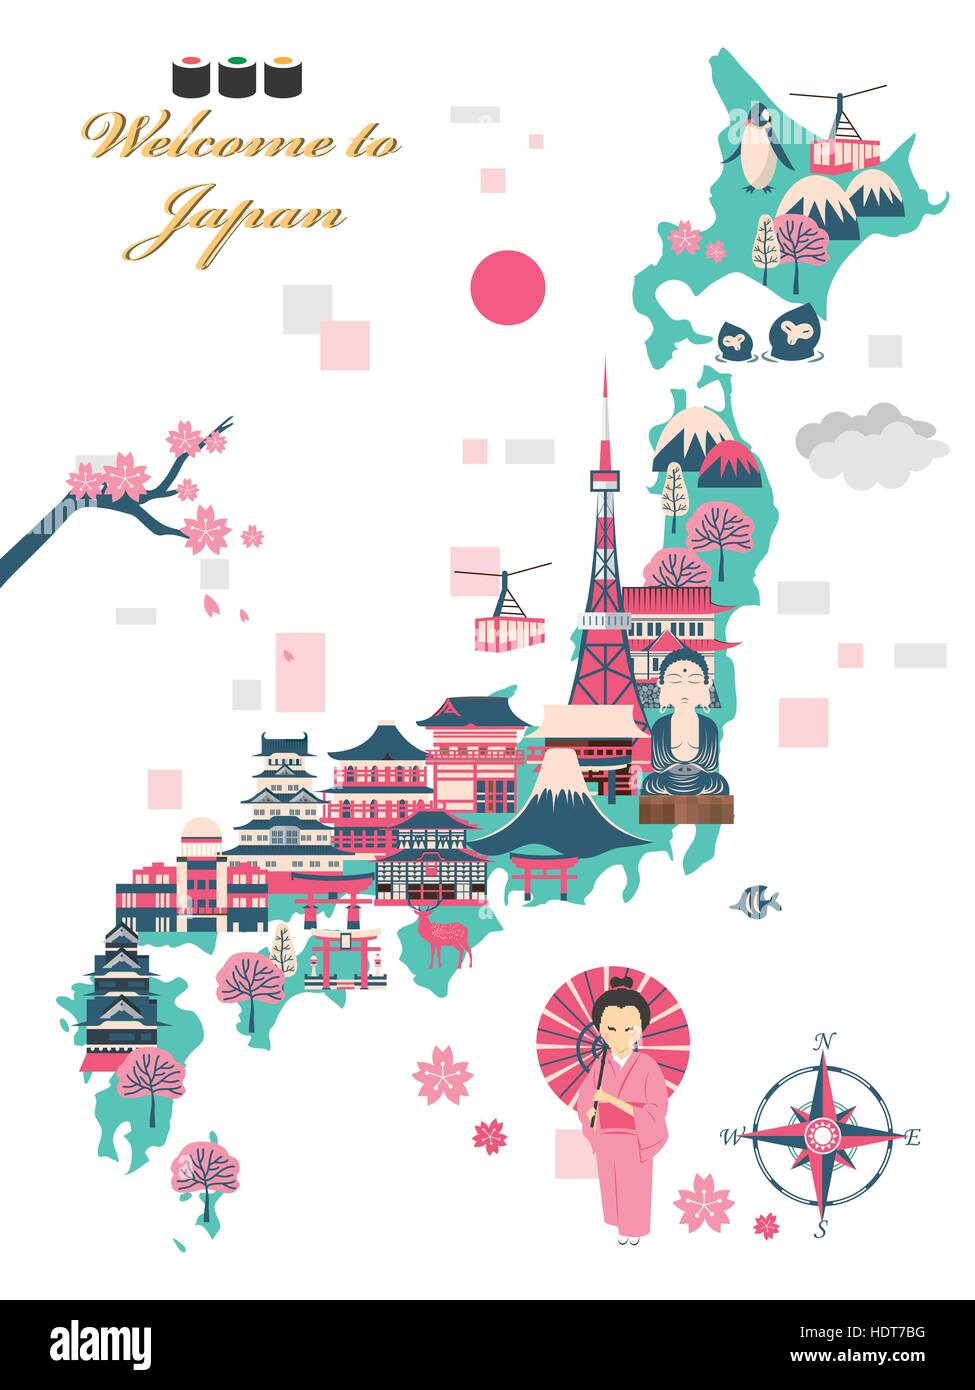 Poster design japan - Stock Vector Lovely Japan Travel Poster Design With Attractions